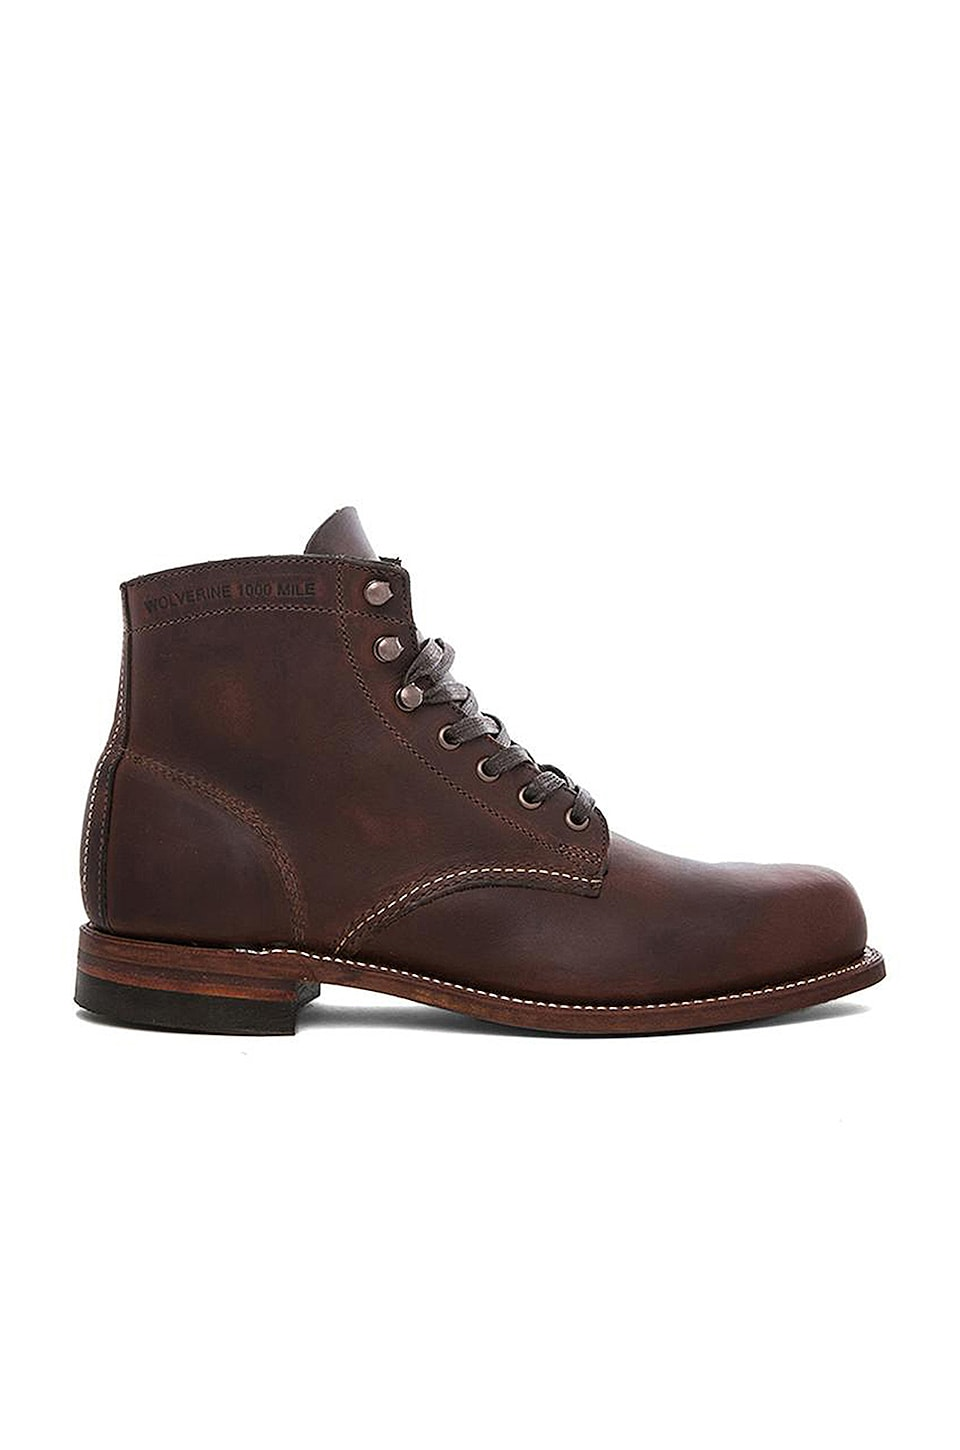 Wolverine 1000 Mile Original Boot в цвете Brown